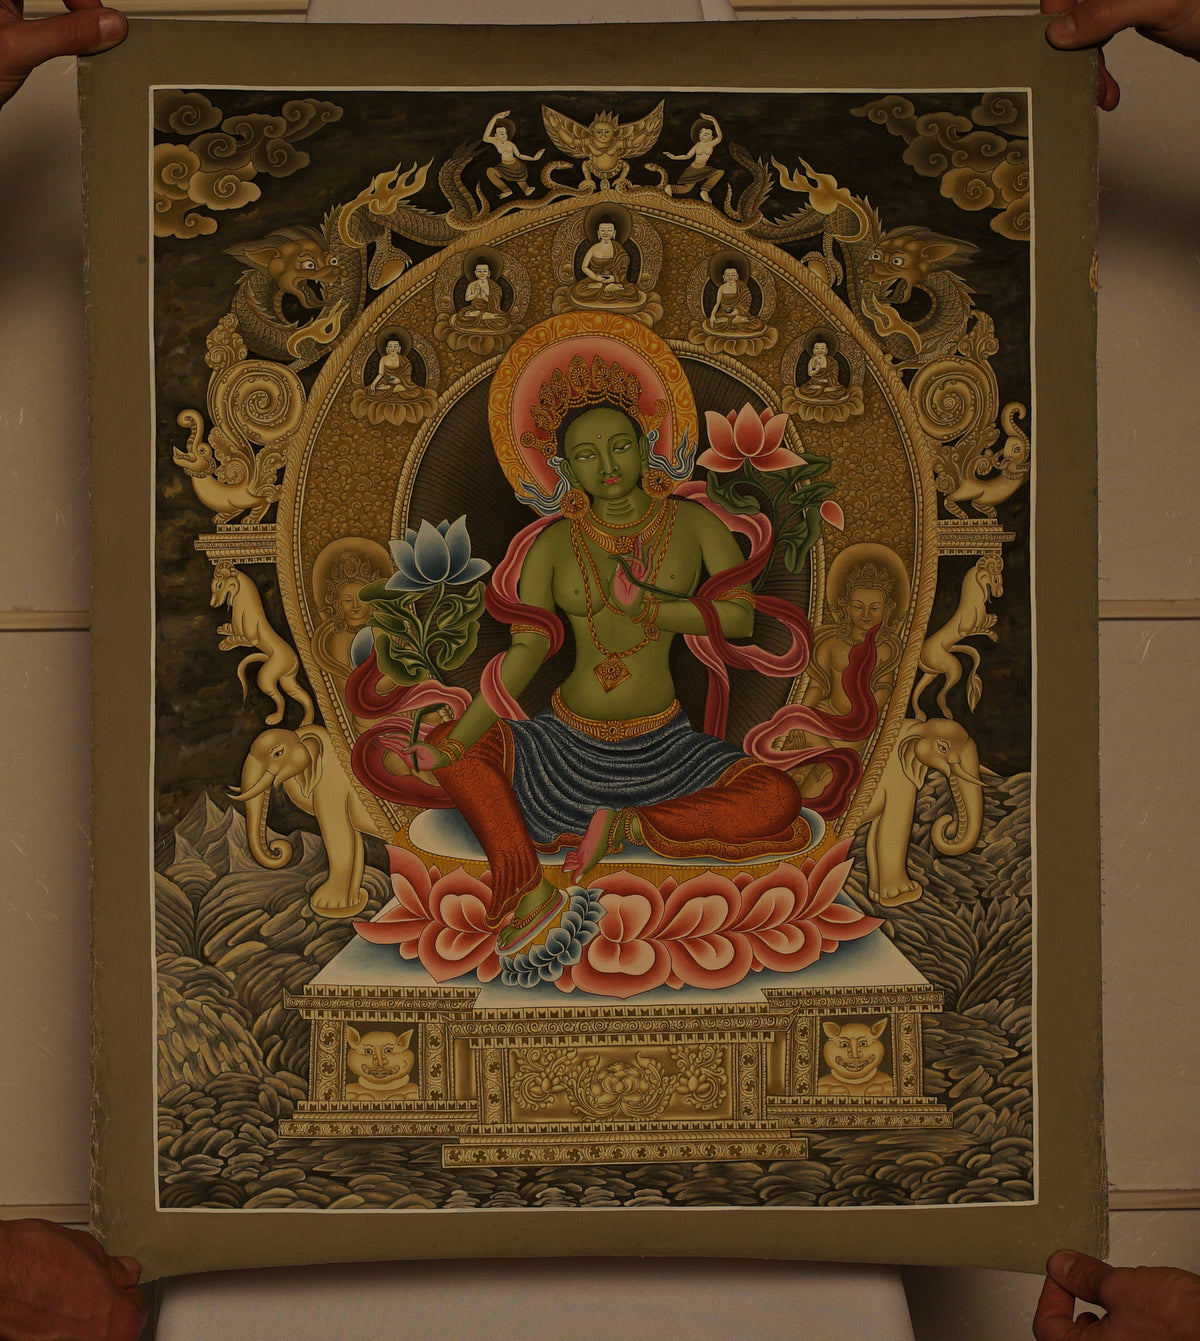 Green Tara with Gold and Precious Stone Colors